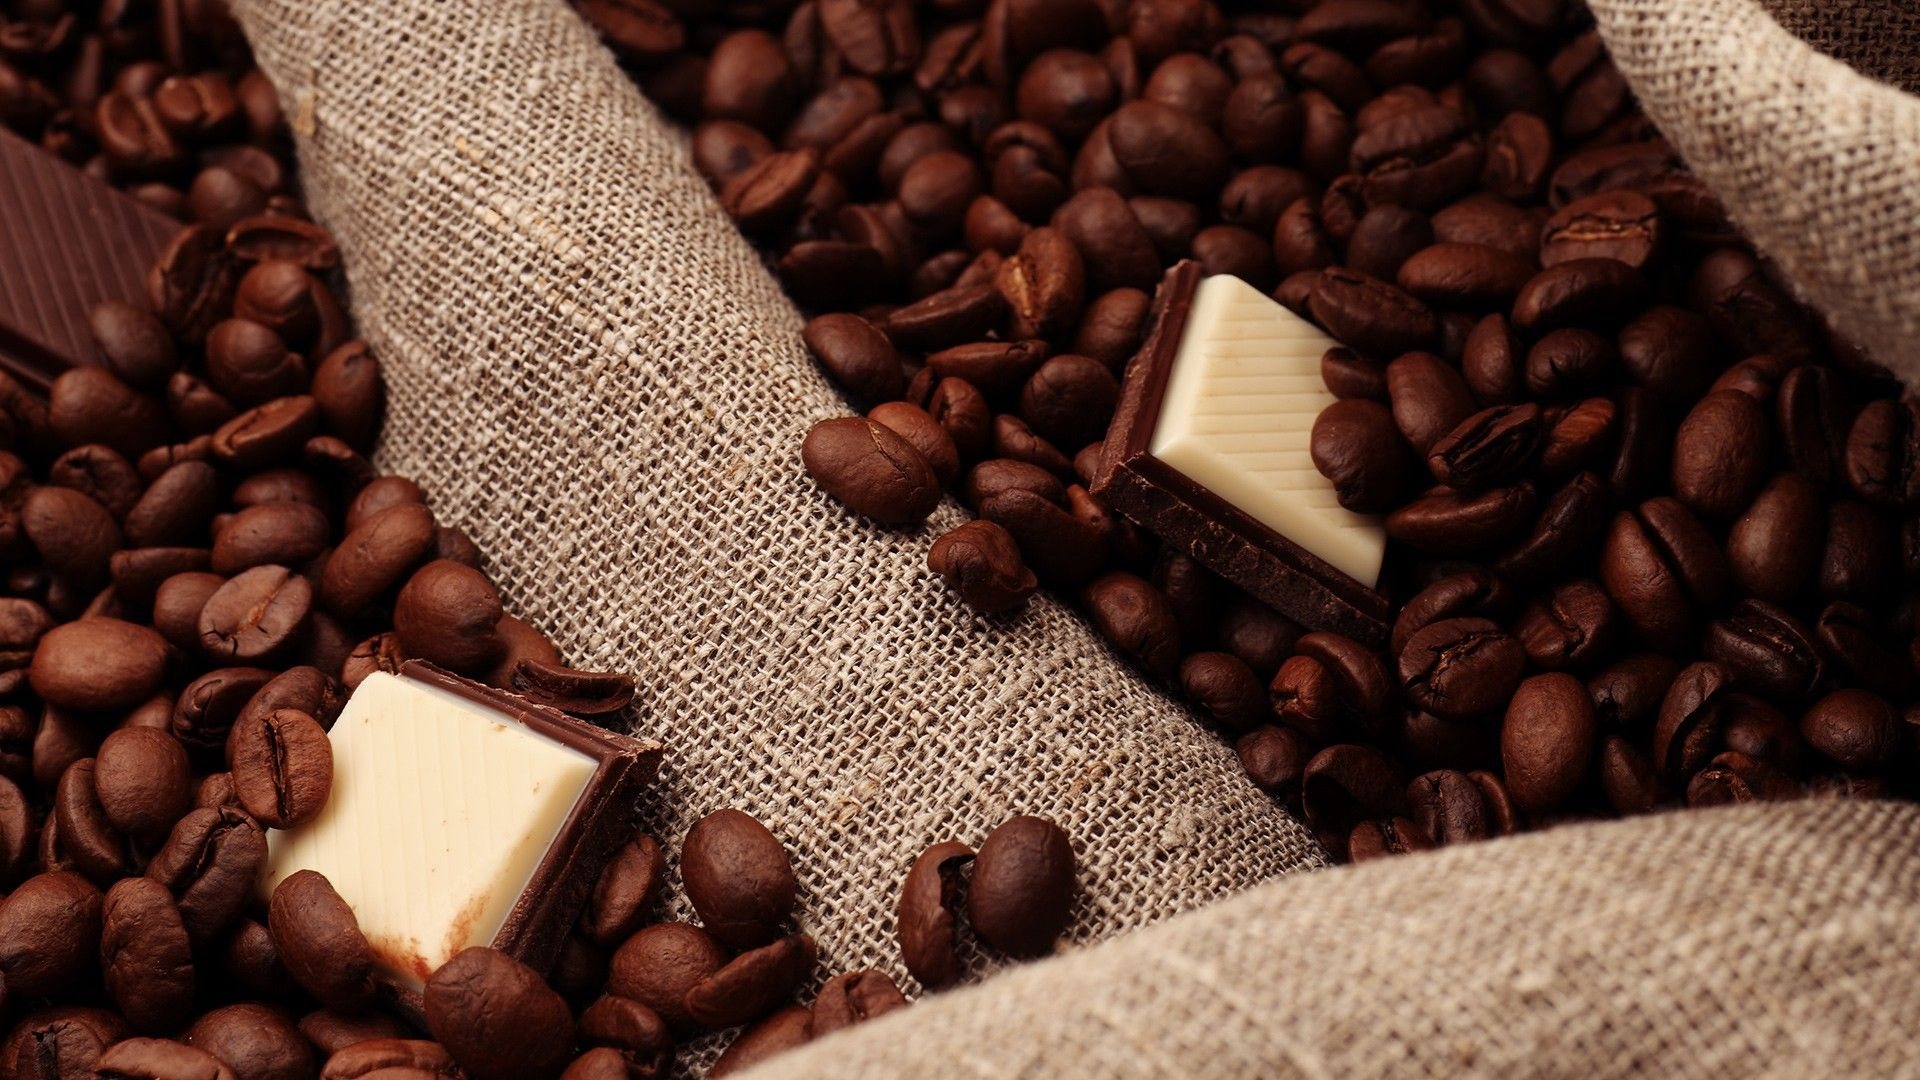 Showcase Of Delicious And Beautiful Chocolate Wallpapers And Hd